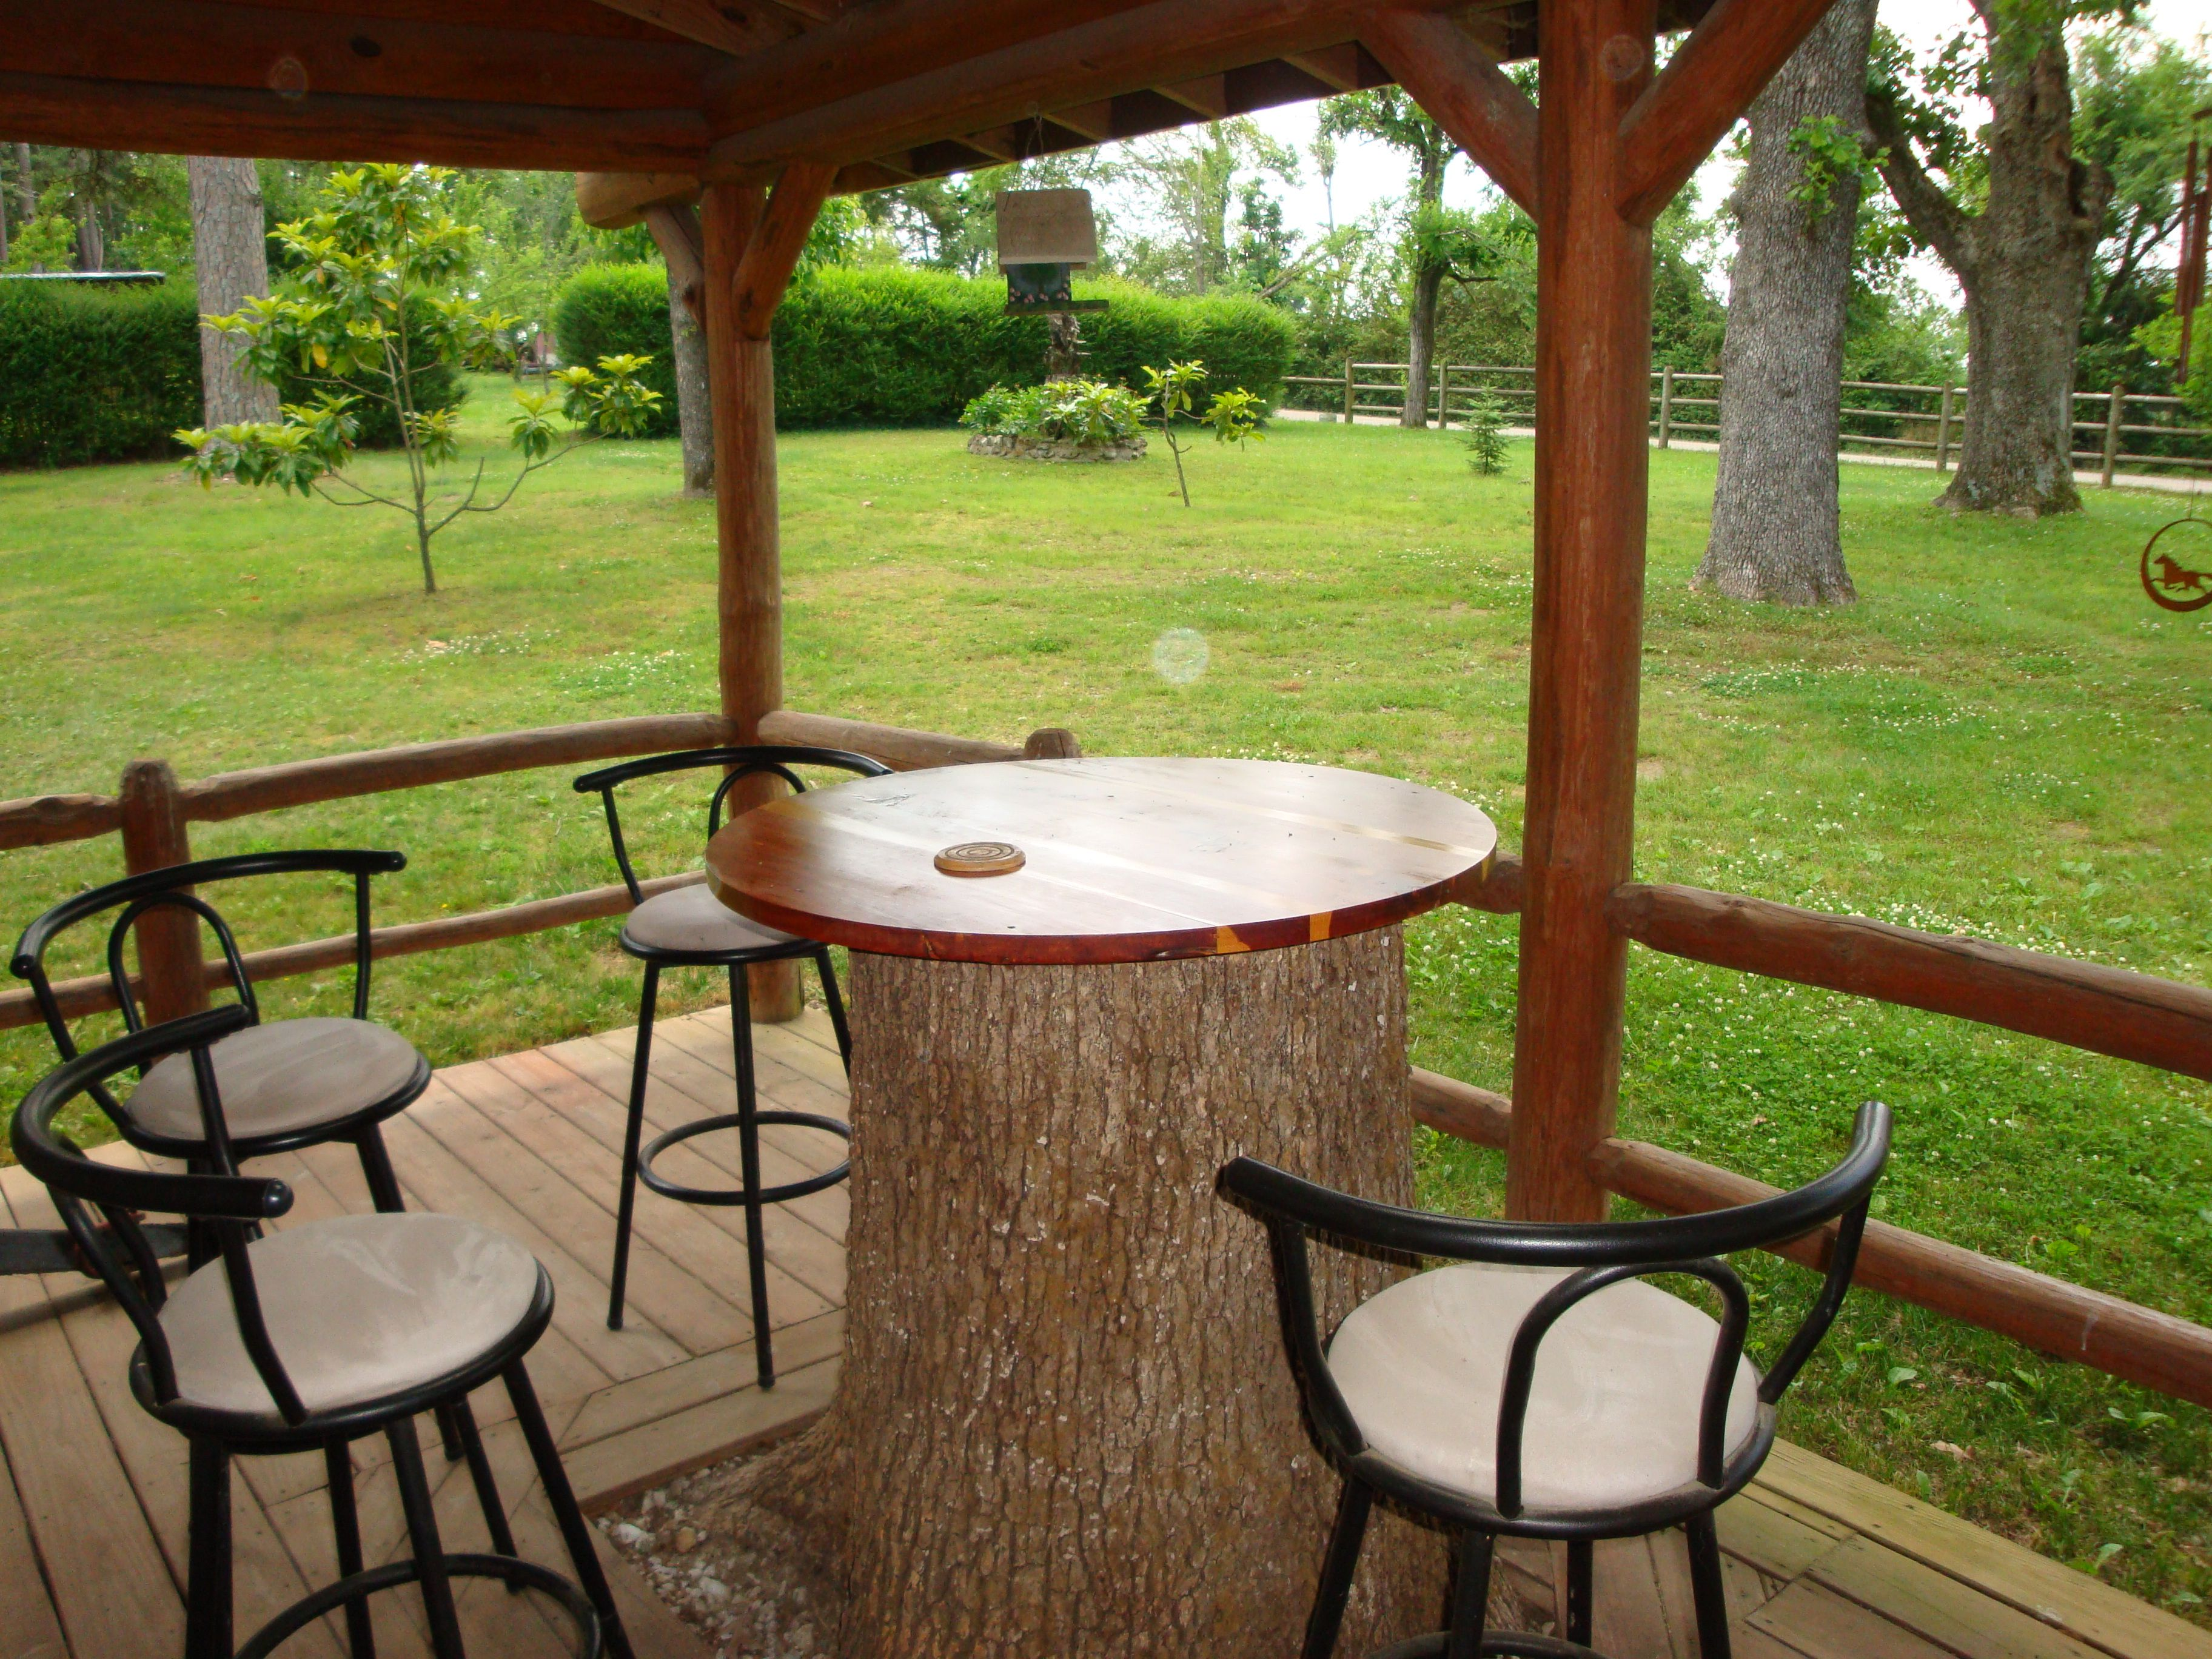 using wood/stumps in outdoor spaces | moab somerset velvet paper ...